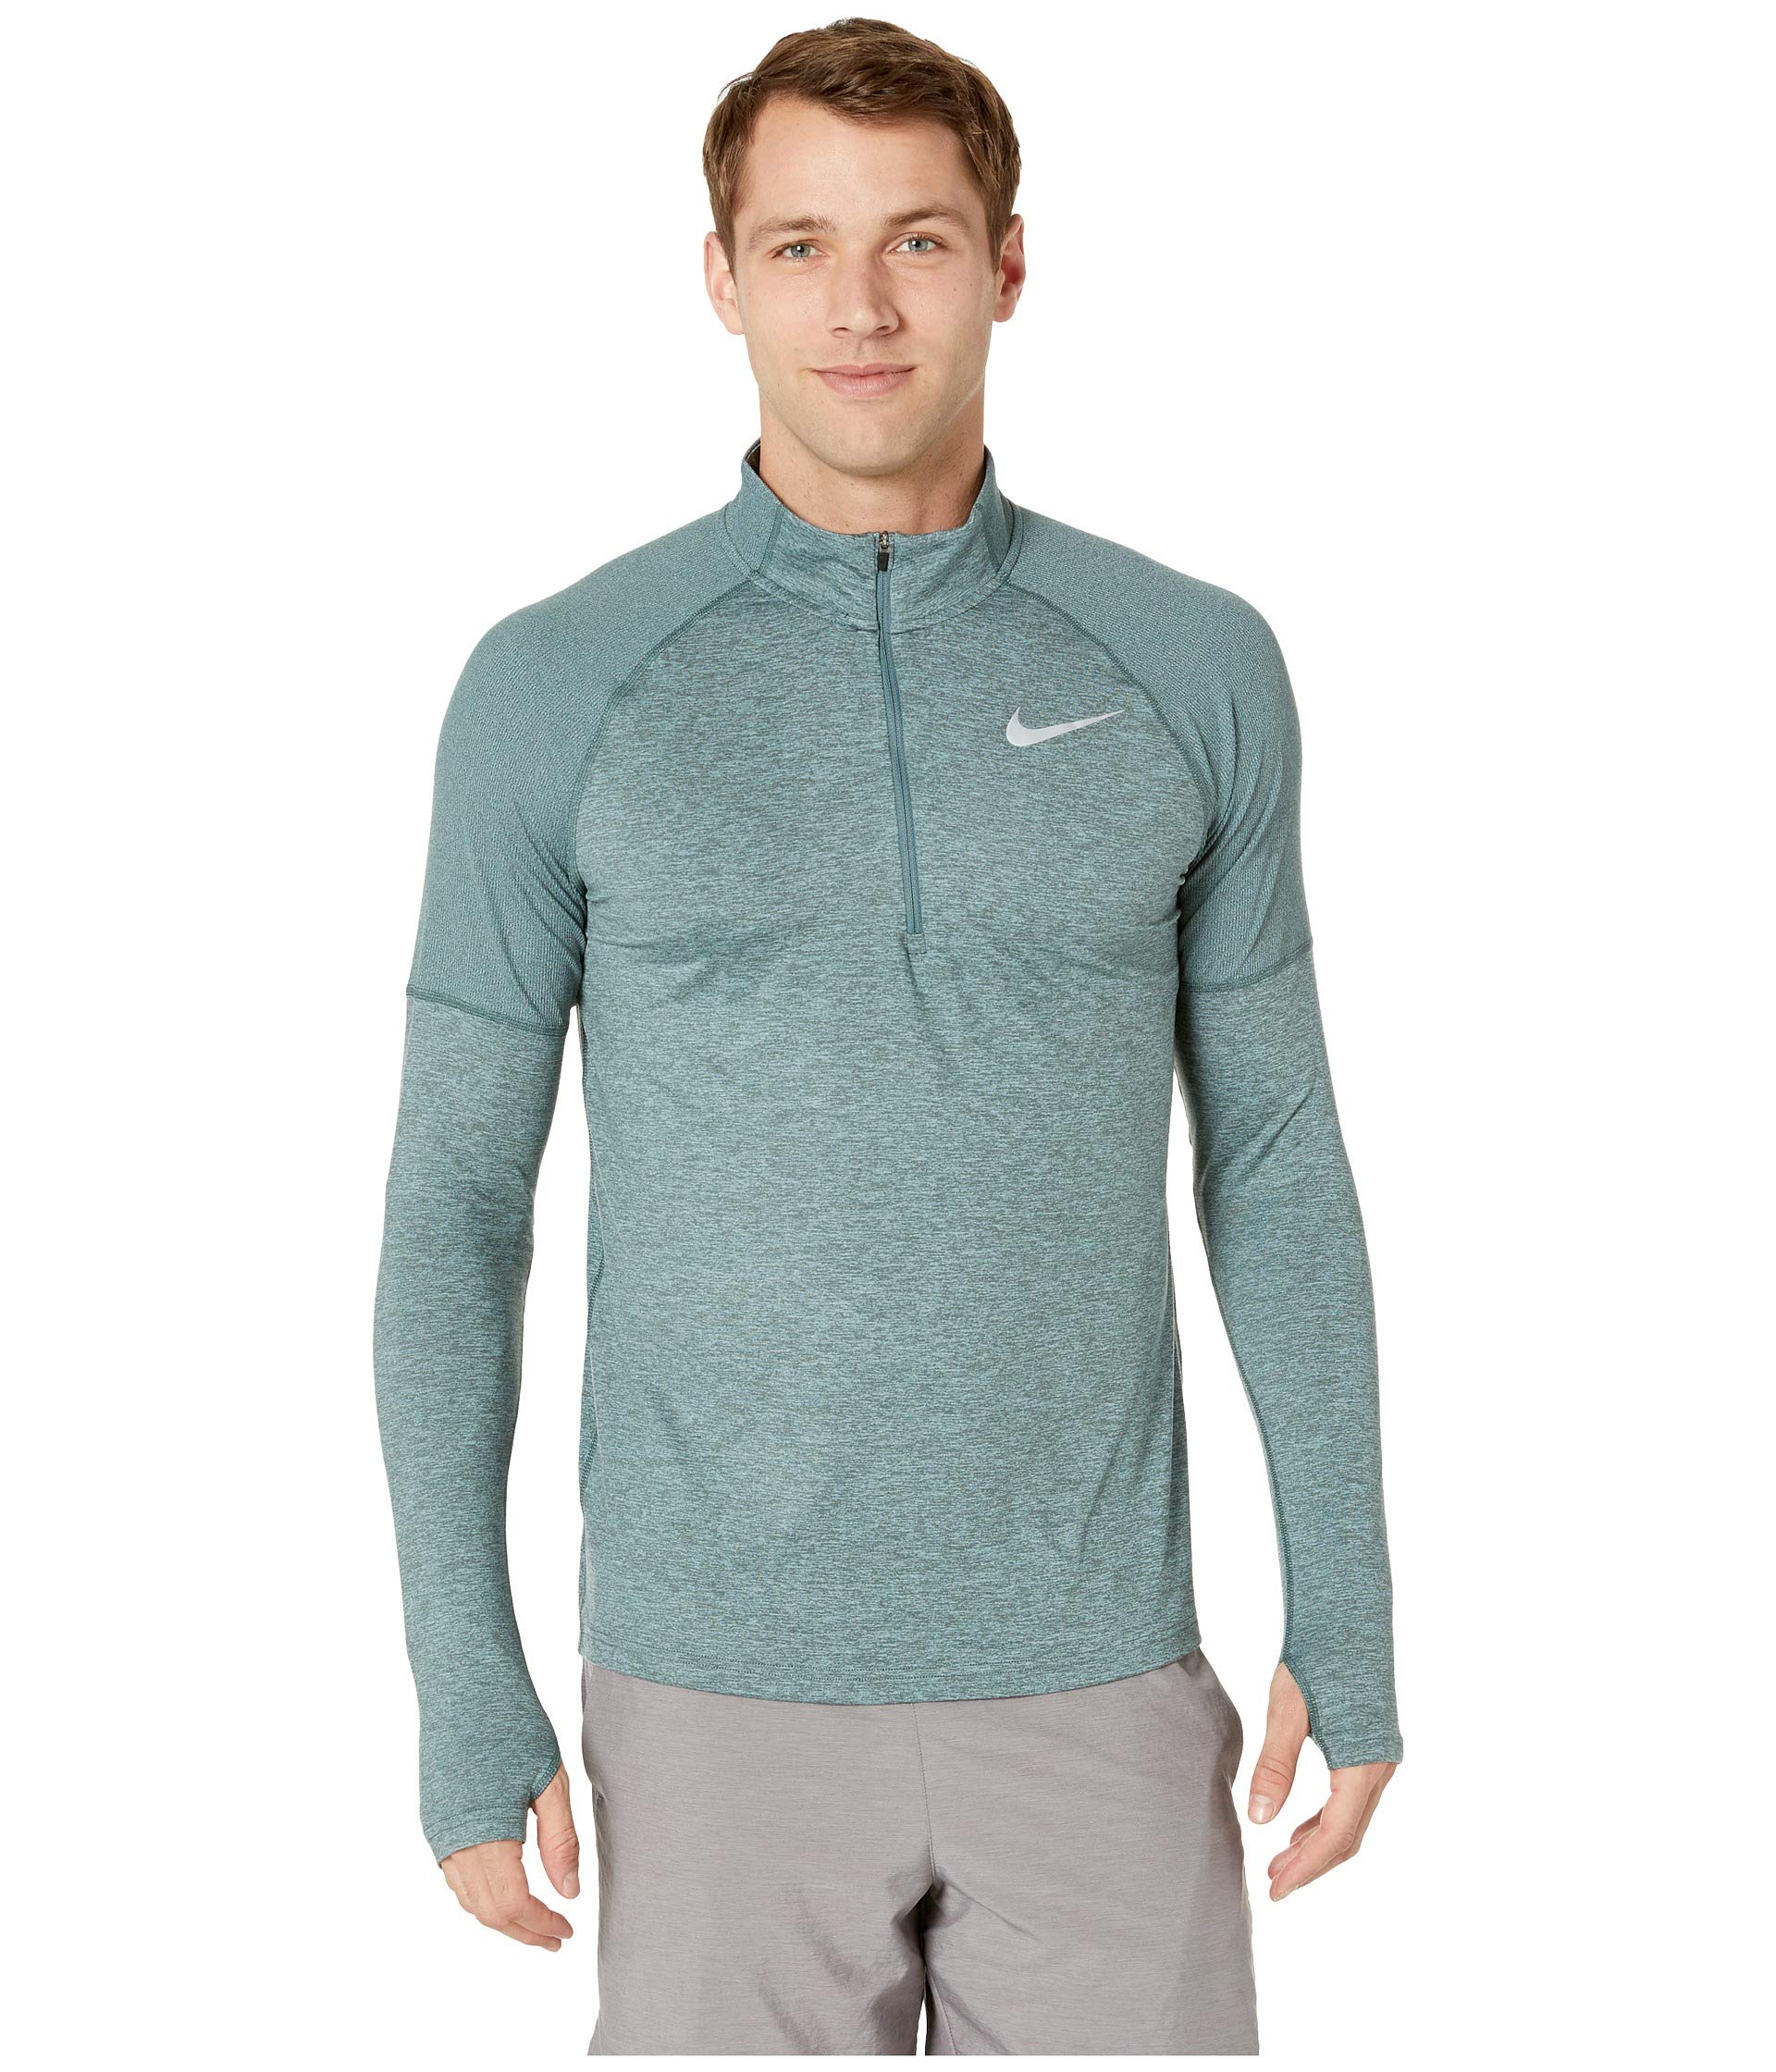 Nike Men's Element 1/2 Zip Running Top Hasta/Aviator Grey/Reflective Silver Size Small